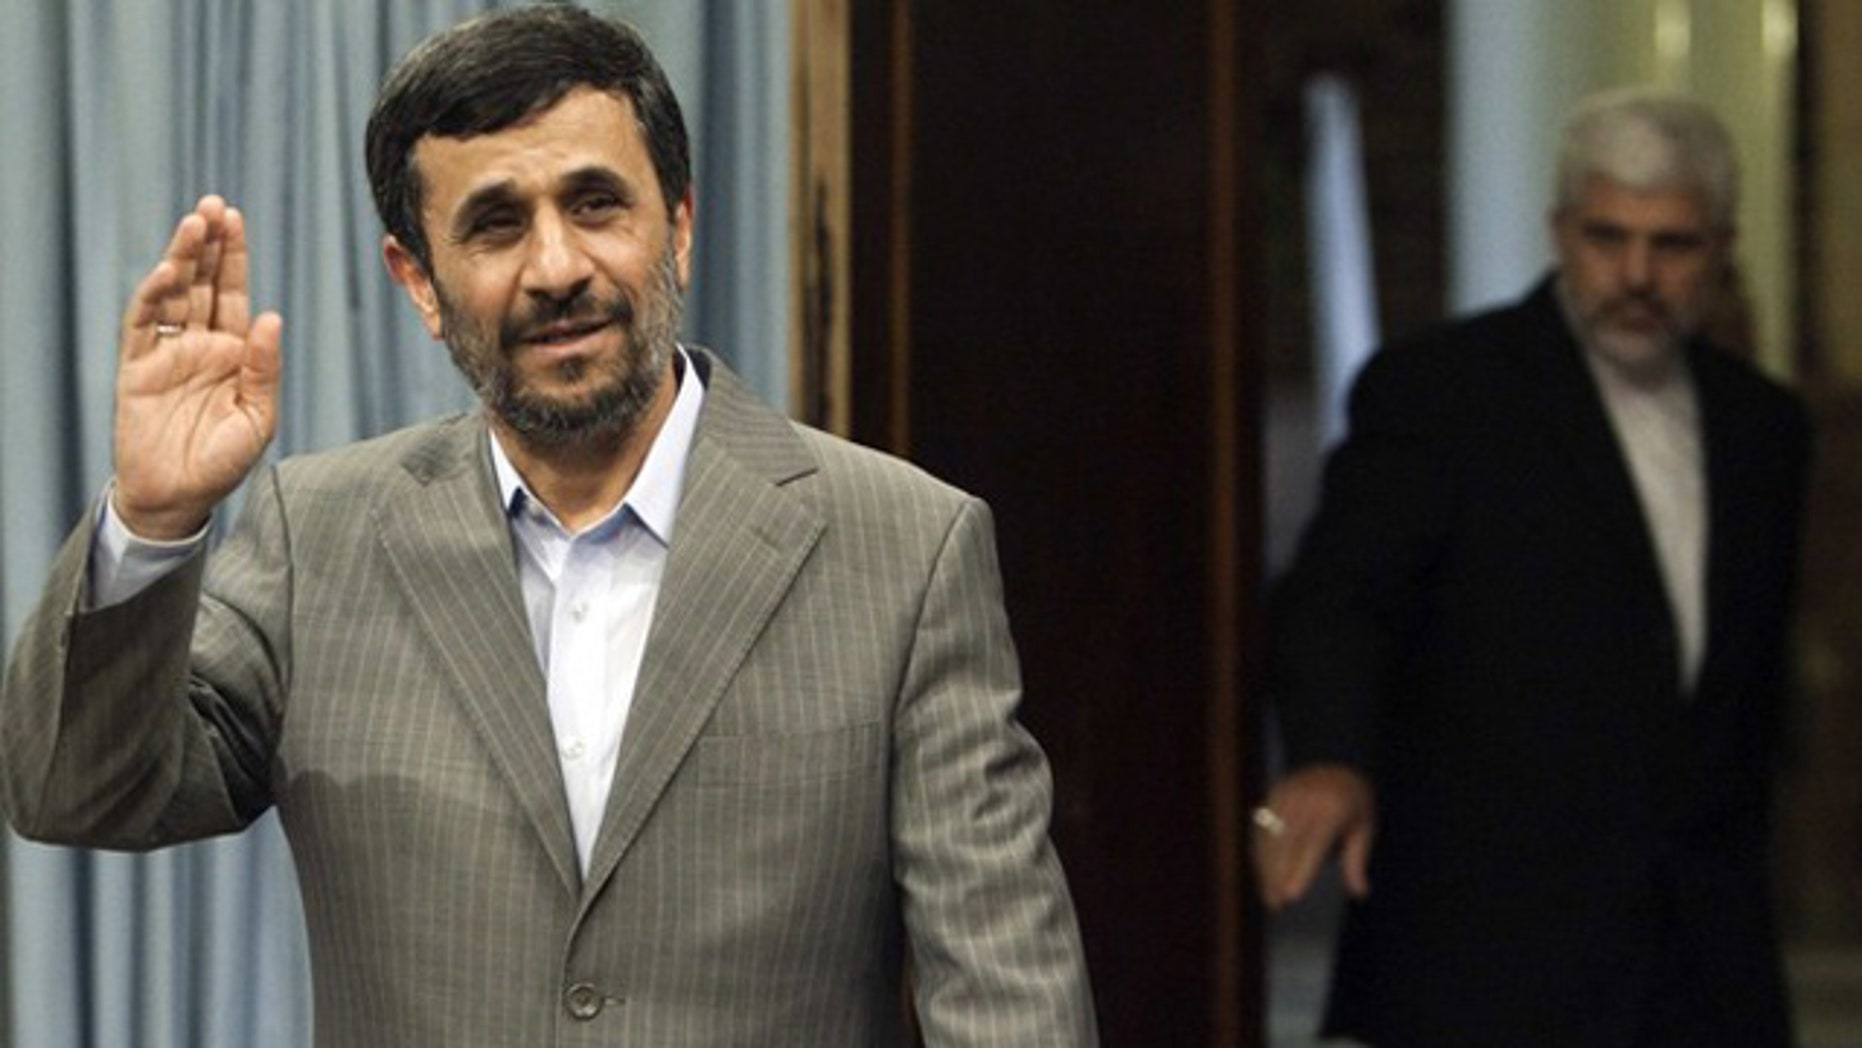 July 15: Iran's President Mahmoud Ahmadinejad arrives for an official meeting in Tehran.